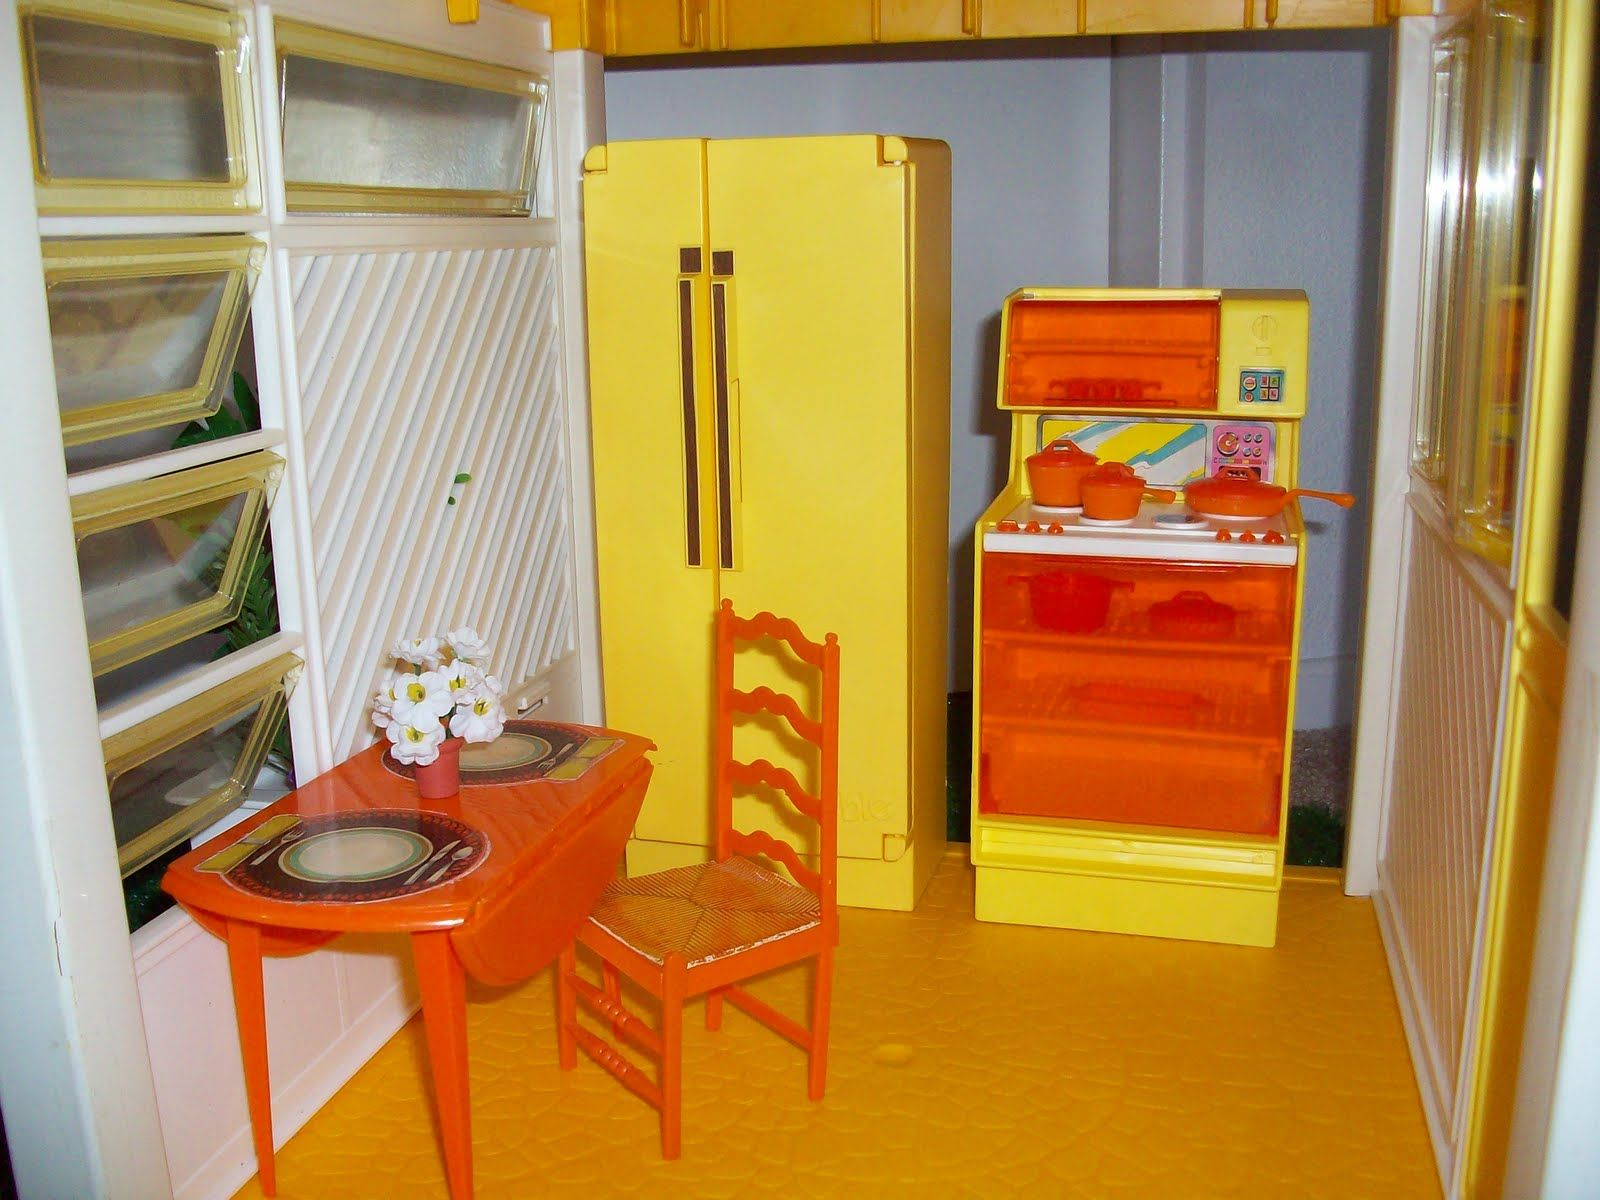 A Frame Kitchen Kitchen Of Barbies 1978 A Frame Dream House There Was No